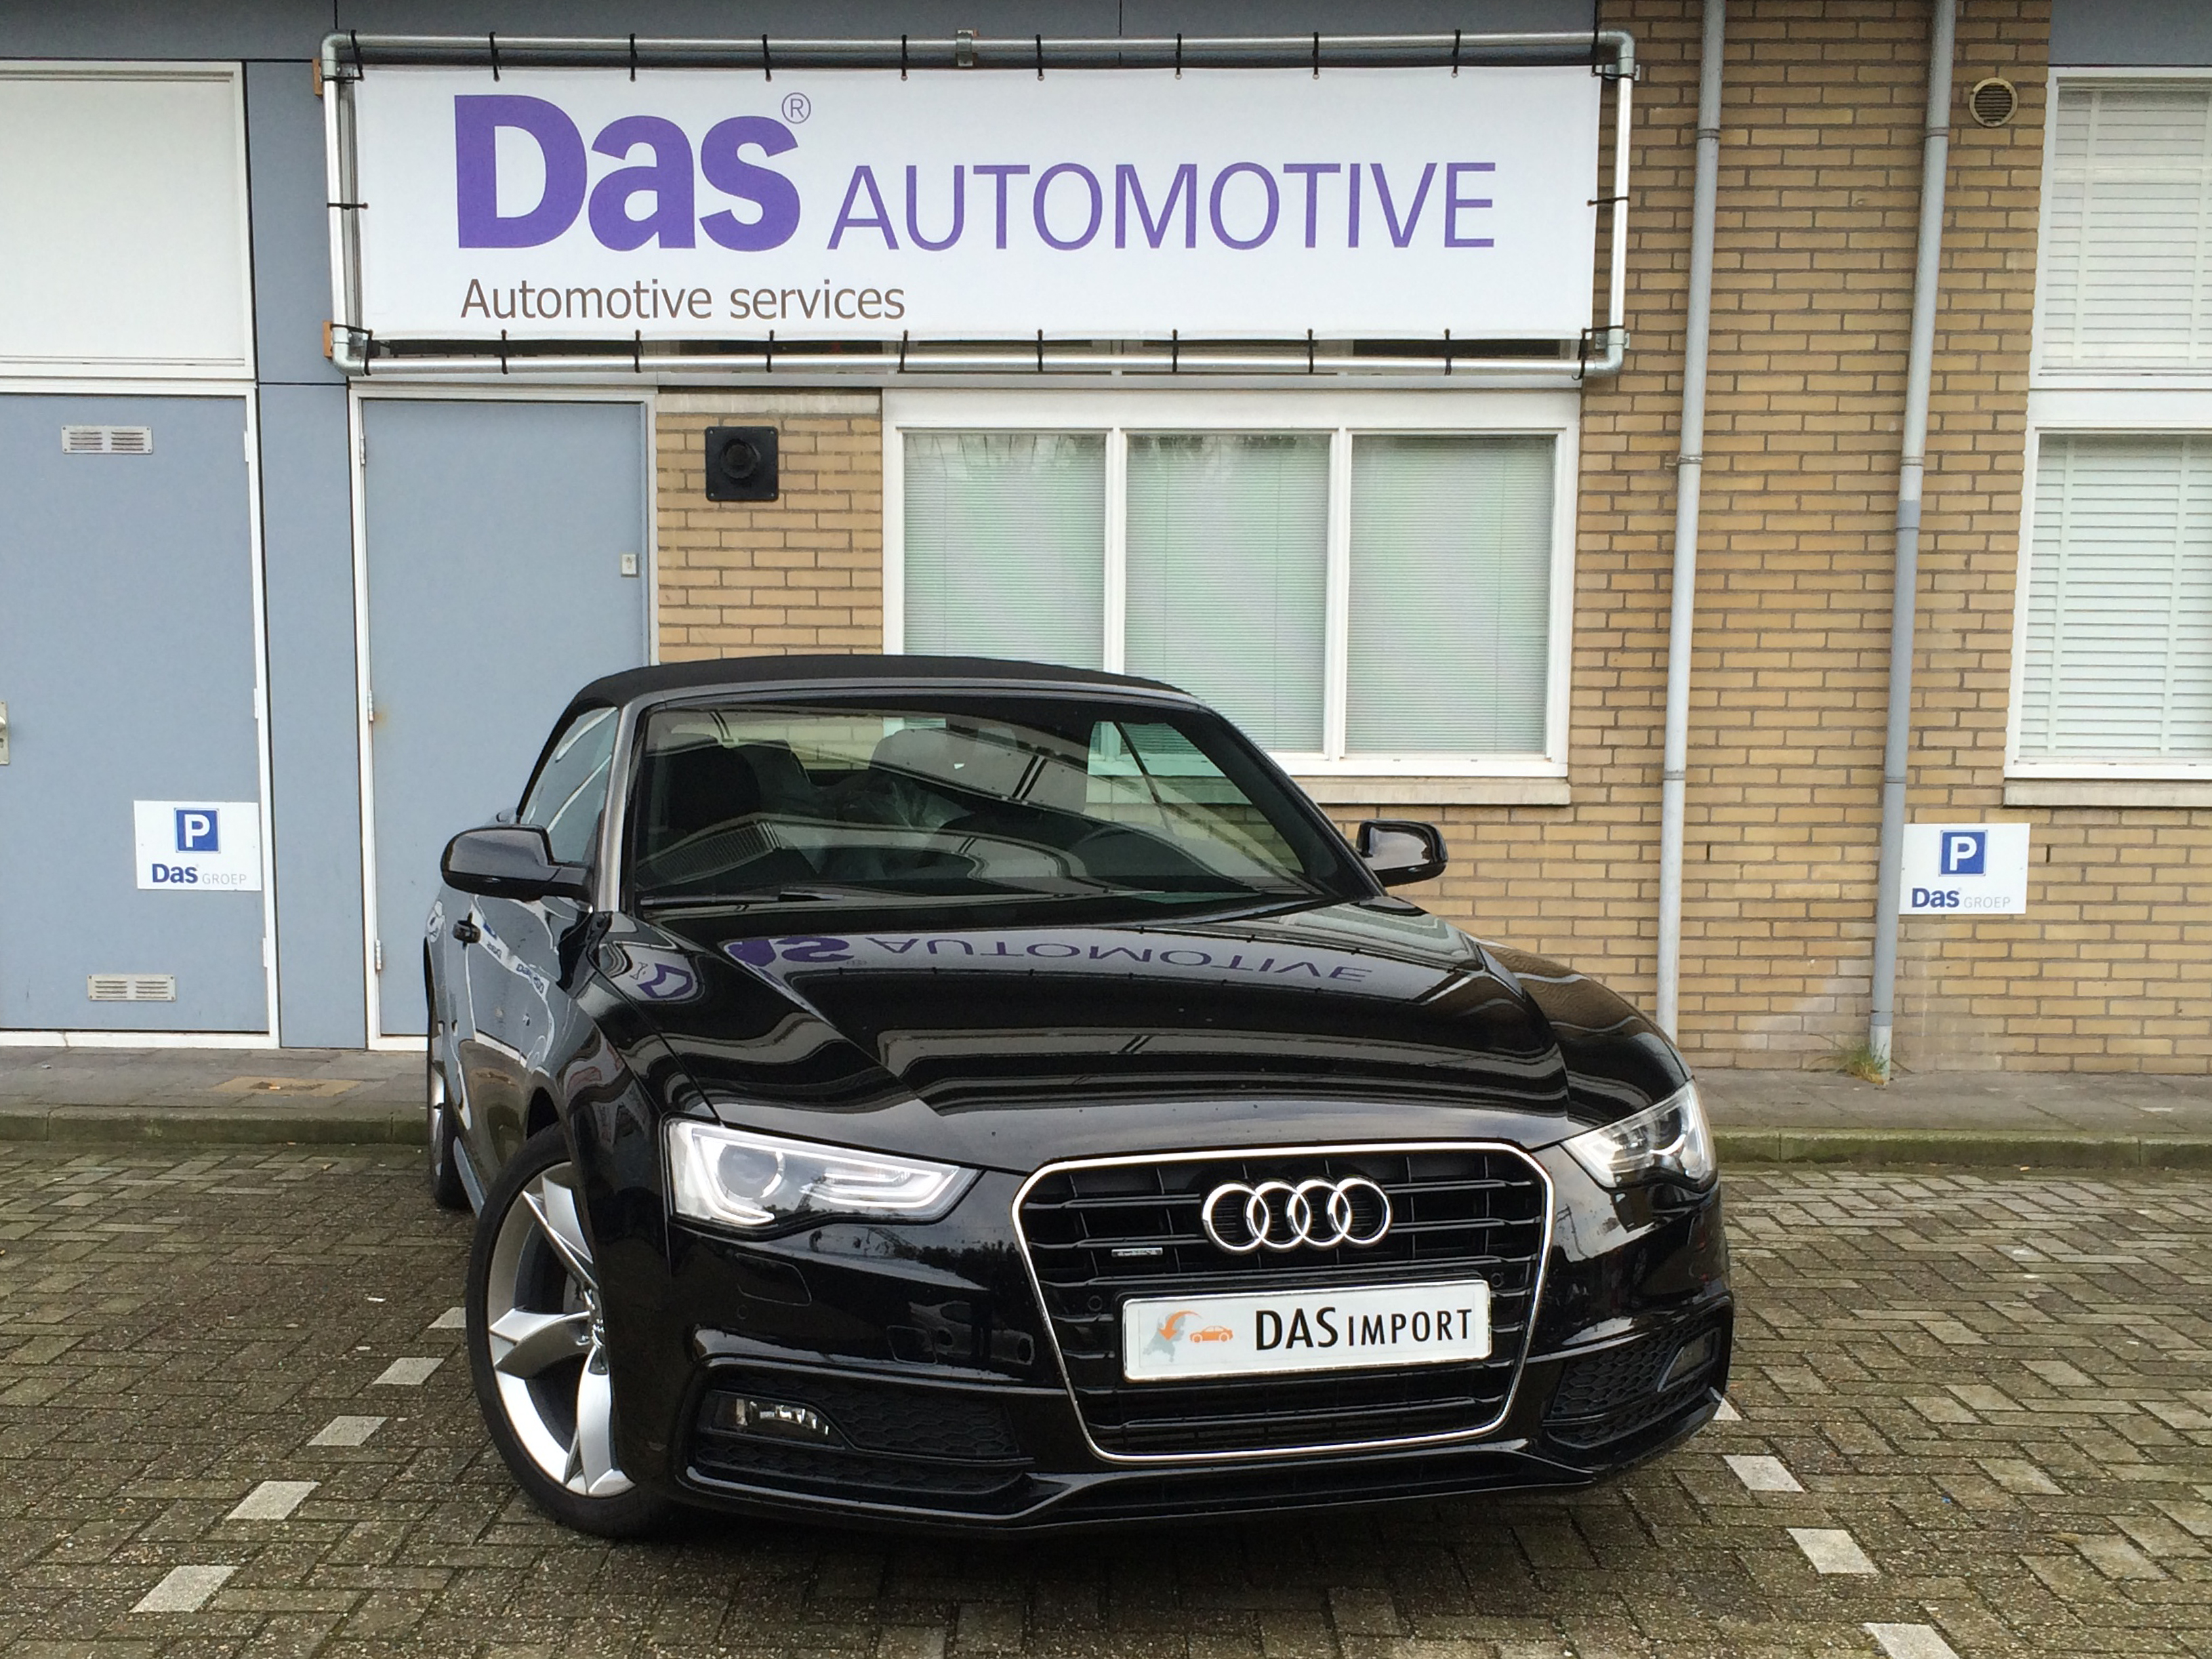 Importauto: Audi A5 Cabriolet 2.0 TFSI 155kW multitronic 4/2012